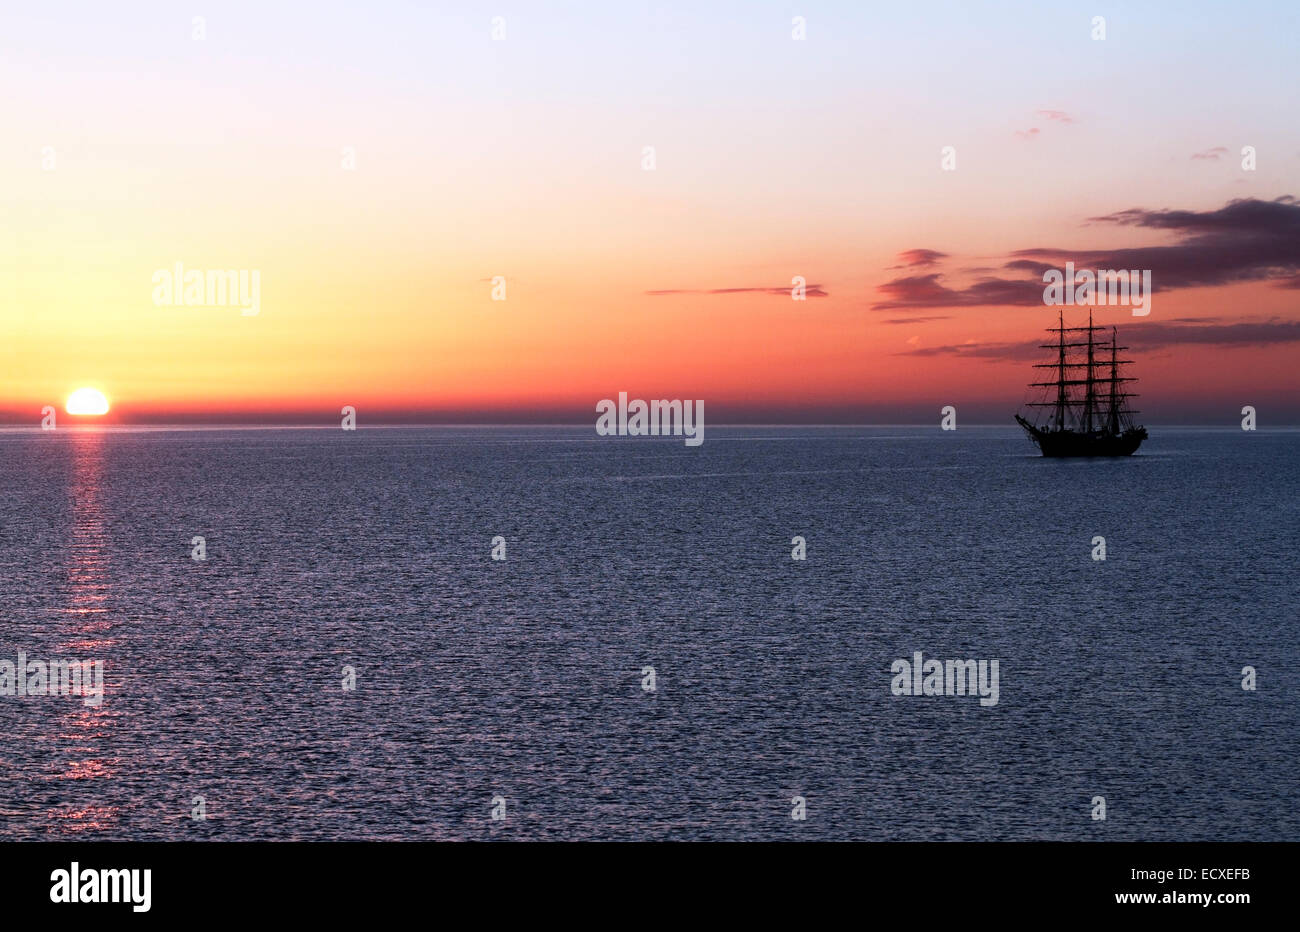 Georg Stage, a three-masted full-rigged Danish training tall ship at sunrise on the Sound in Denmark one spring - Stock Image